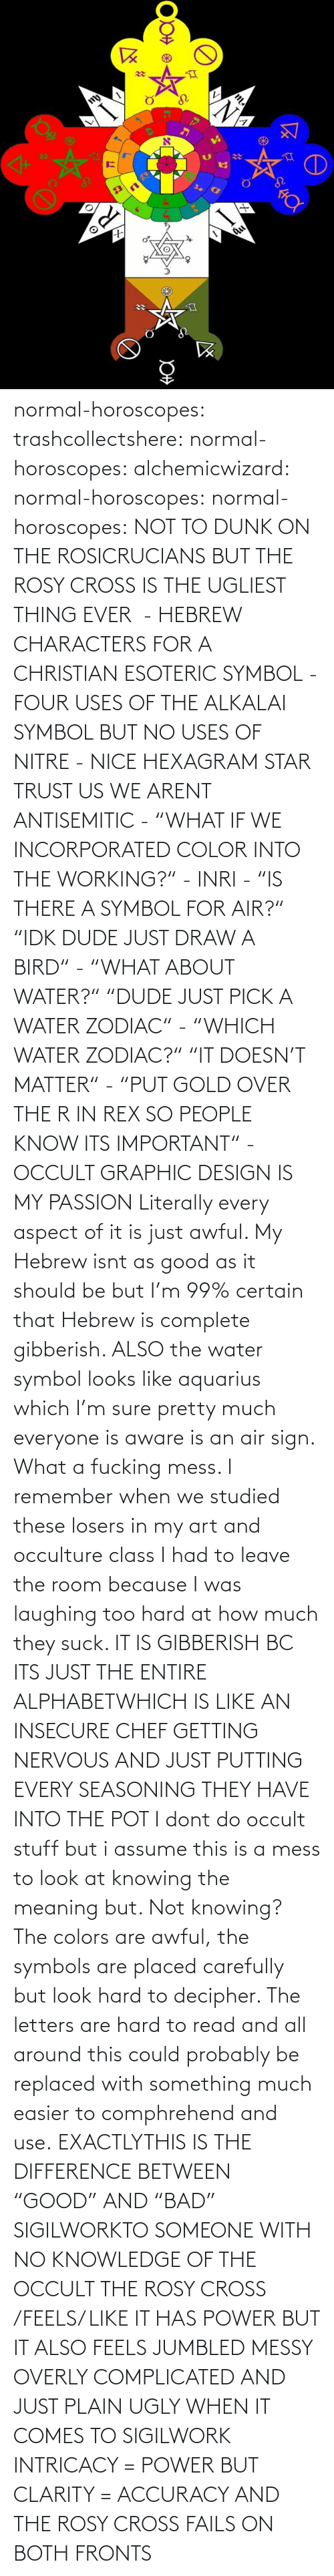 "air: normal-horoscopes:  trashcollectshere: normal-horoscopes:   alchemicwizard:  normal-horoscopes:  normal-horoscopes: NOT TO DUNK ON THE ROSICRUCIANS BUT THE ROSY CROSS IS THE UGLIEST THING EVER  - HEBREW CHARACTERS FOR A CHRISTIAN ESOTERIC SYMBOL - FOUR USES OF THE ALKALAI SYMBOL BUT NO USES OF NITRE - NICE HEXAGRAM STAR TRUST US WE ARENT ANTISEMITIC - ""WHAT IF WE INCORPORATED COLOR INTO THE WORKING?"" - INRI - ""IS THERE A SYMBOL FOR AIR?"" ""IDK DUDE JUST DRAW A BIRD"" - ""WHAT ABOUT WATER?"" ""DUDE JUST PICK A WATER ZODIAC"" - ""WHICH WATER ZODIAC?"" ""IT DOESN'T MATTER"" - ""PUT GOLD OVER THE R IN REX SO PEOPLE KNOW ITS IMPORTANT"" - OCCULT GRAPHIC DESIGN IS MY PASSION  Literally every aspect of it is just awful. My Hebrew isnt as good as it should be but I'm 99% certain that Hebrew is complete gibberish.  ALSO the water symbol looks like aquarius which I'm sure pretty much everyone is aware is an air sign. What a fucking mess.  I remember when we studied these losers in my art and occulture class I had to leave the room because I was laughing too hard at how much they suck.   IT IS GIBBERISH BC ITS JUST THE ENTIRE ALPHABETWHICH IS LIKE AN INSECURE CHEF GETTING NERVOUS AND JUST PUTTING EVERY SEASONING THEY HAVE INTO THE POT     I dont do occult stuff but i assume this is a mess to look at knowing the meaning but. Not knowing? The colors are awful, the symbols are placed carefully but look hard to decipher. The letters are hard to read and all around this could probably be replaced with something much easier to comphrehend and use.  EXACTLYTHIS IS THE DIFFERENCE BETWEEN ""GOOD"" AND ""BAD"" SIGILWORKTO SOMEONE WITH NO KNOWLEDGE OF THE OCCULT THE ROSY CROSS /FEELS/ LIKE IT HAS POWER BUT IT ALSO FEELS JUMBLED MESSY OVERLY COMPLICATED AND JUST PLAIN UGLY WHEN IT COMES TO SIGILWORK INTRICACY = POWER BUT CLARITY = ACCURACY AND THE ROSY CROSS FAILS ON BOTH FRONTS"